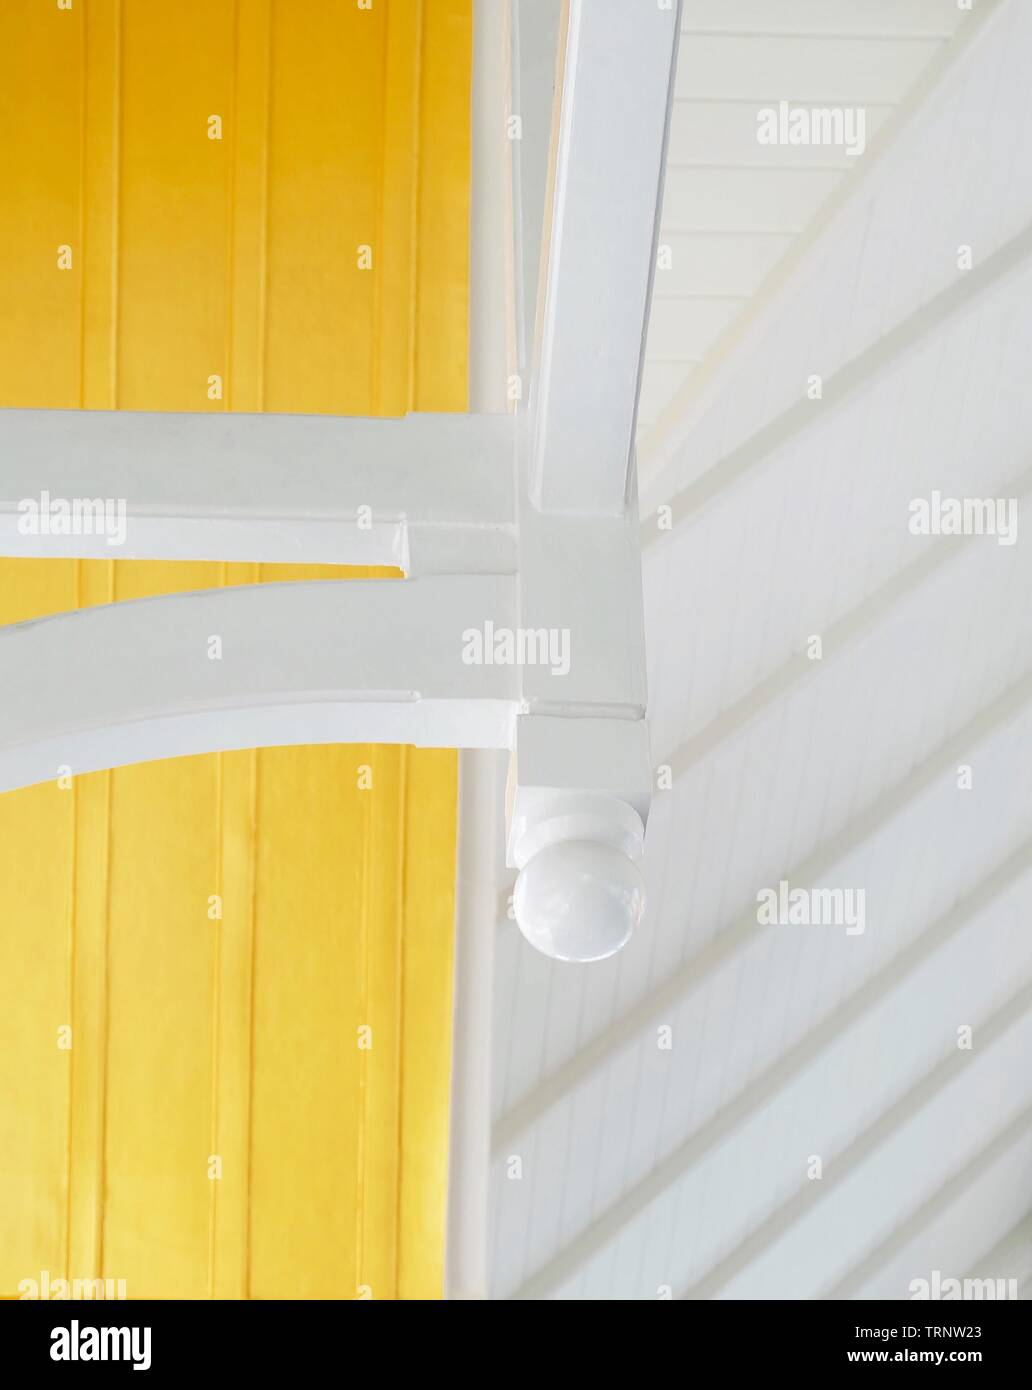 Roof Support Beam Interior Stock Photos & Roof Support Beam Interior